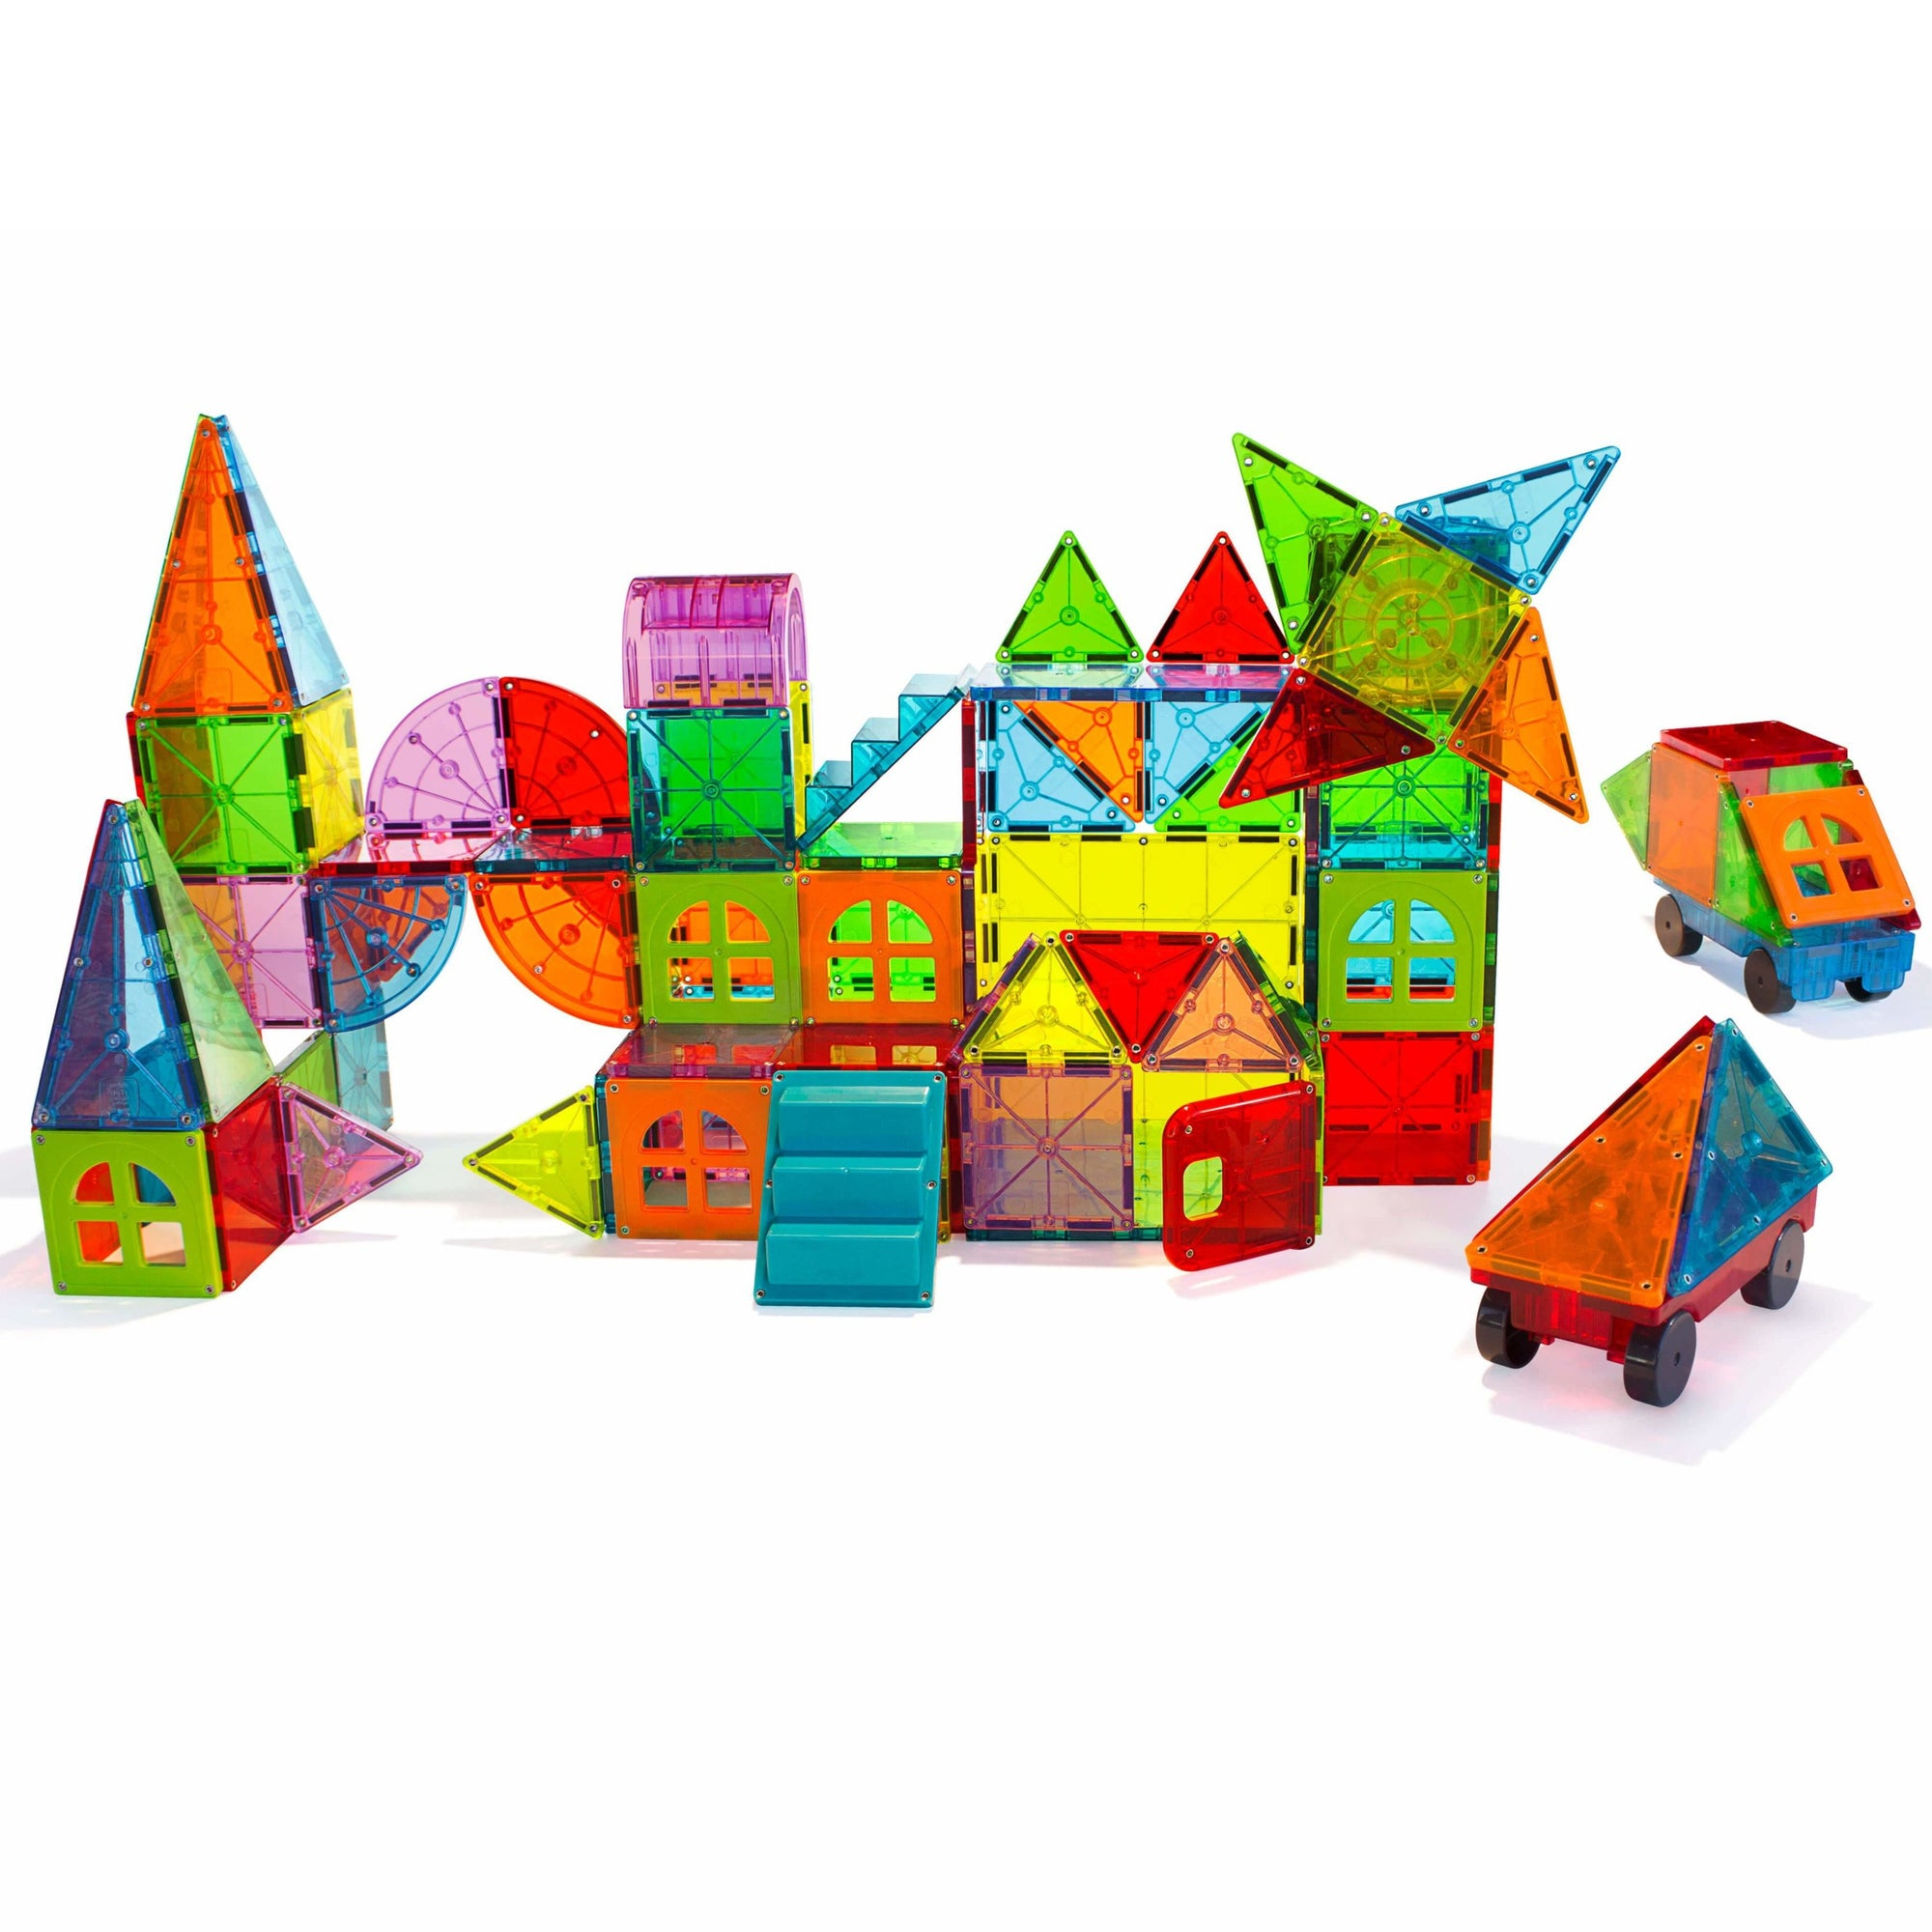 Metropolis 110pc MagnaTiles Set - MagnaTiles - Age: Big Kids (6-8), Age: Little Kids (3-5), Age: Older Kids (8+), Age_Big Kids (6-8), Age_Little Kids (3-5), Age_Older Kids (8+), Big Ticket Items, Busy Kids, Construction, Educational, Family Favourites, MagnaTiles, Price Range: $200 +, To Play - Hugs For Kids